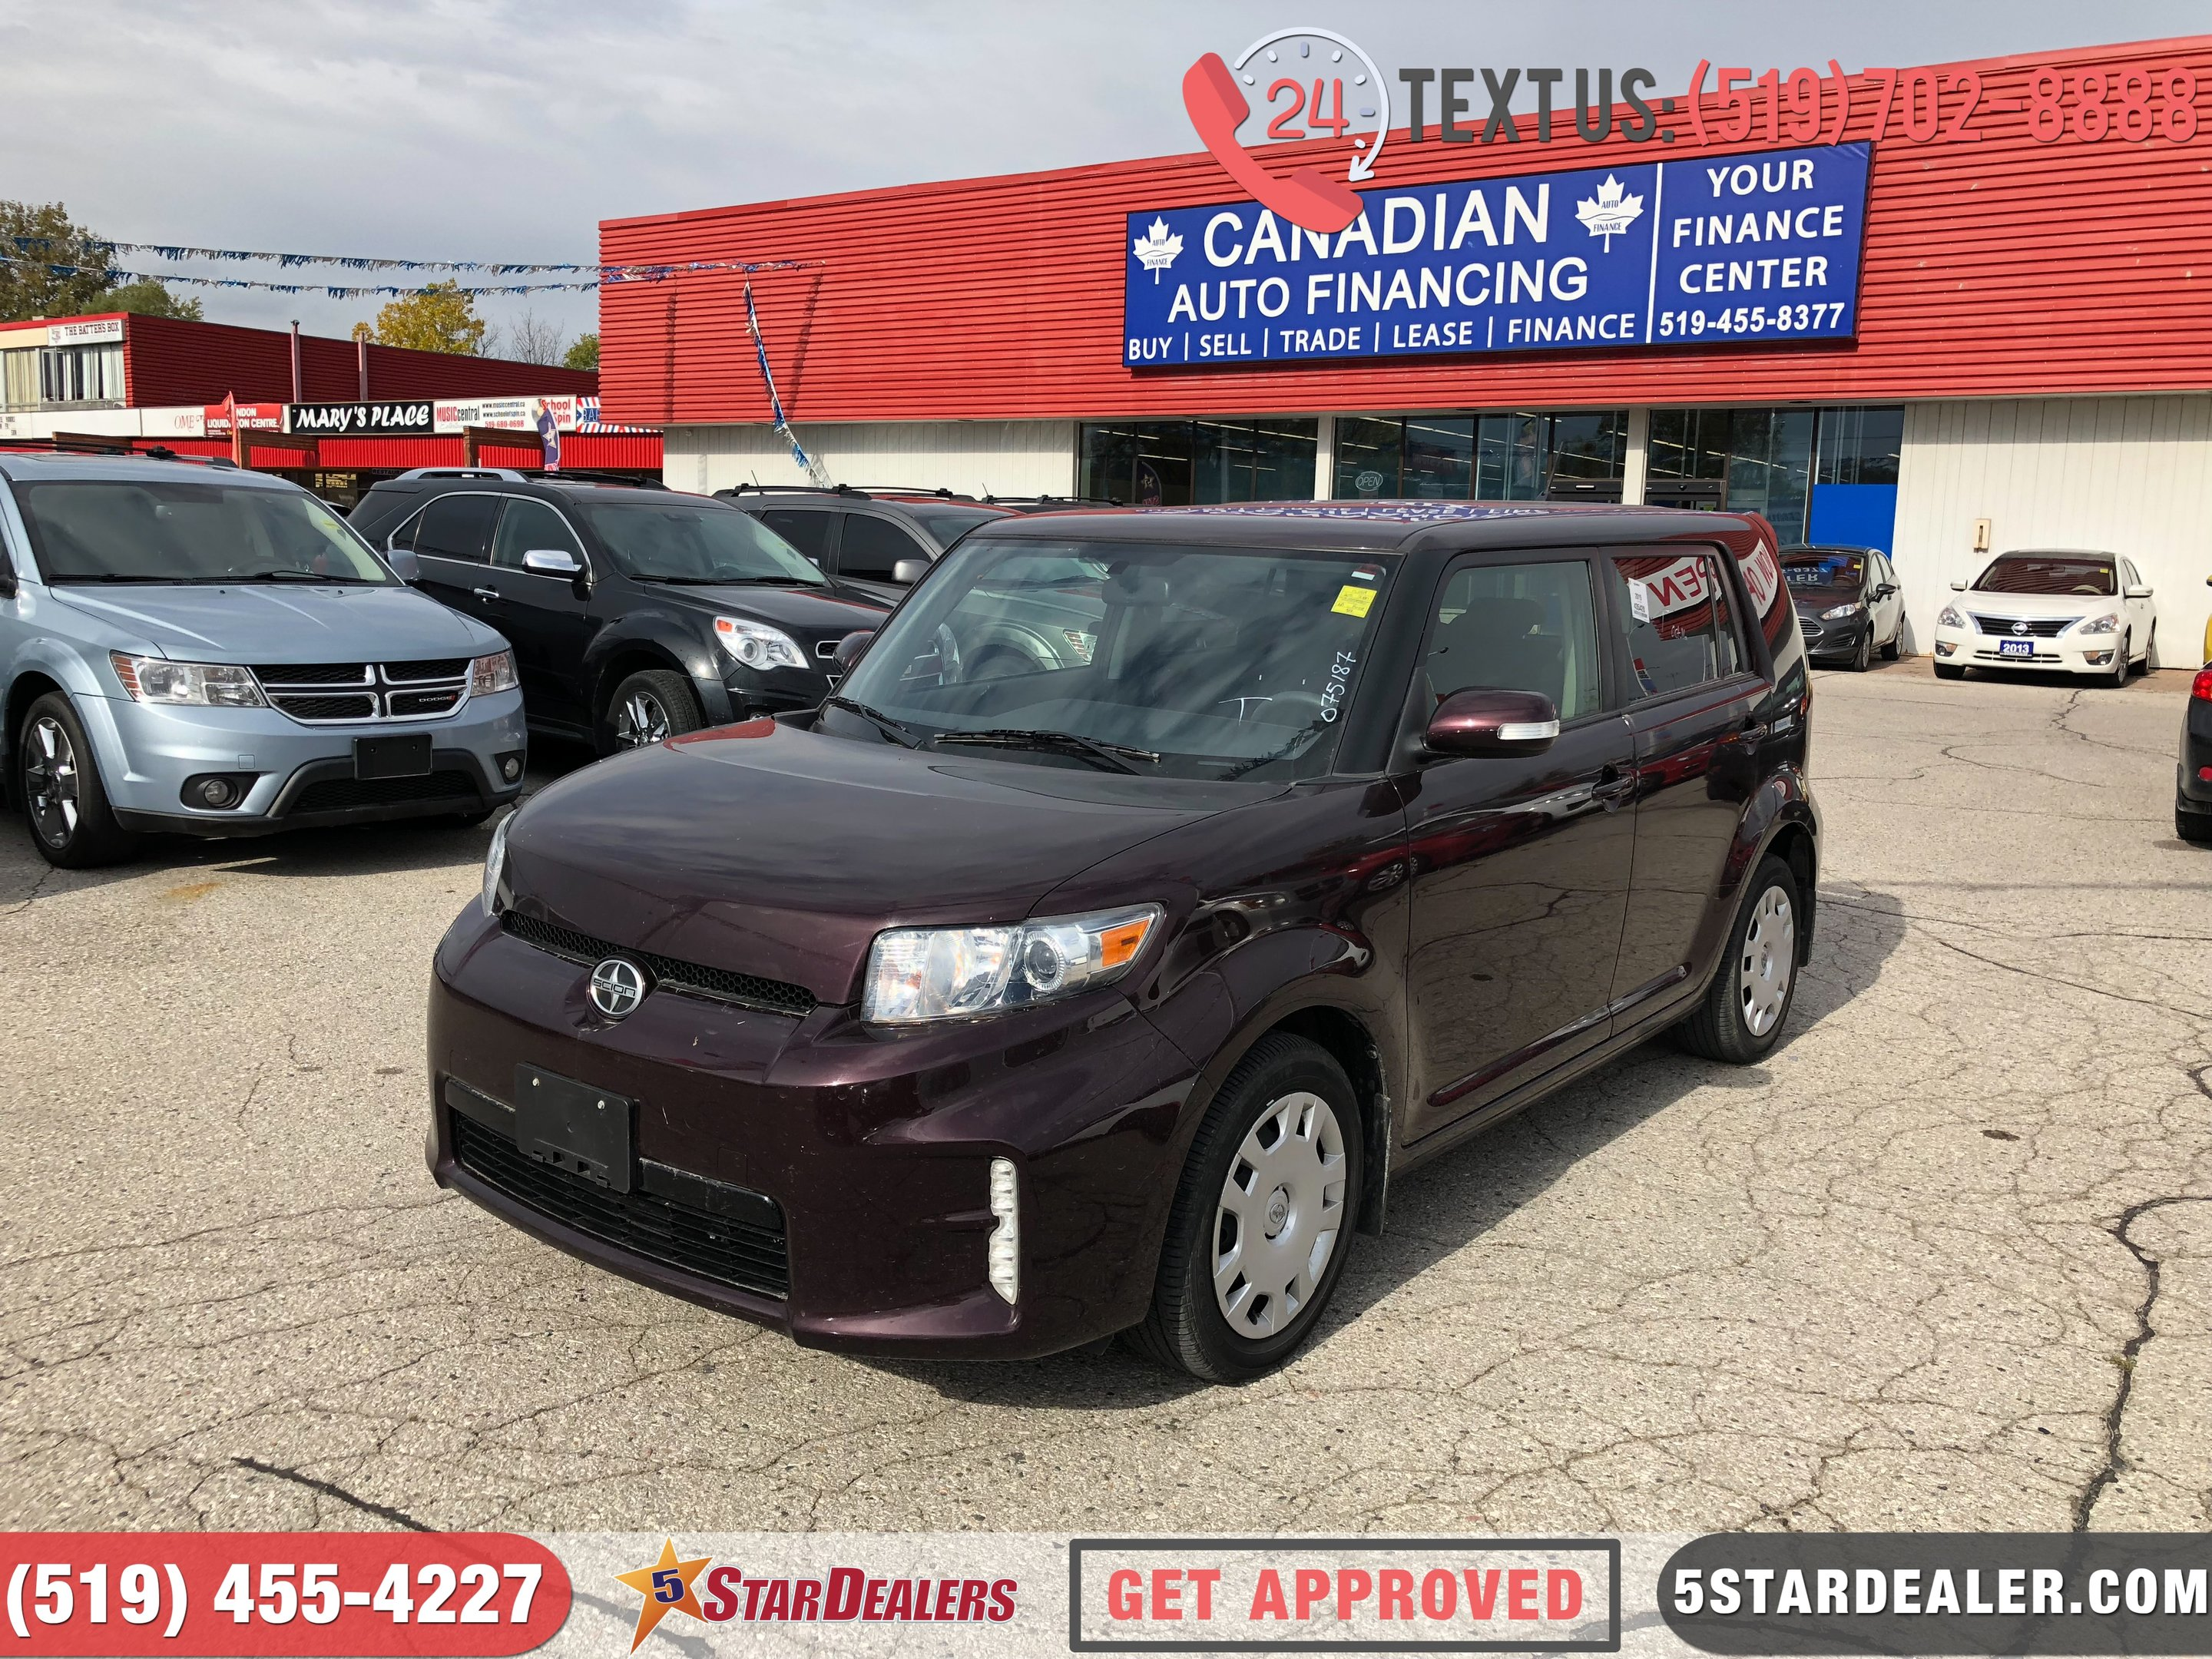 2015 Scion Xb Vehicle Information Wharncliffe Auto Group